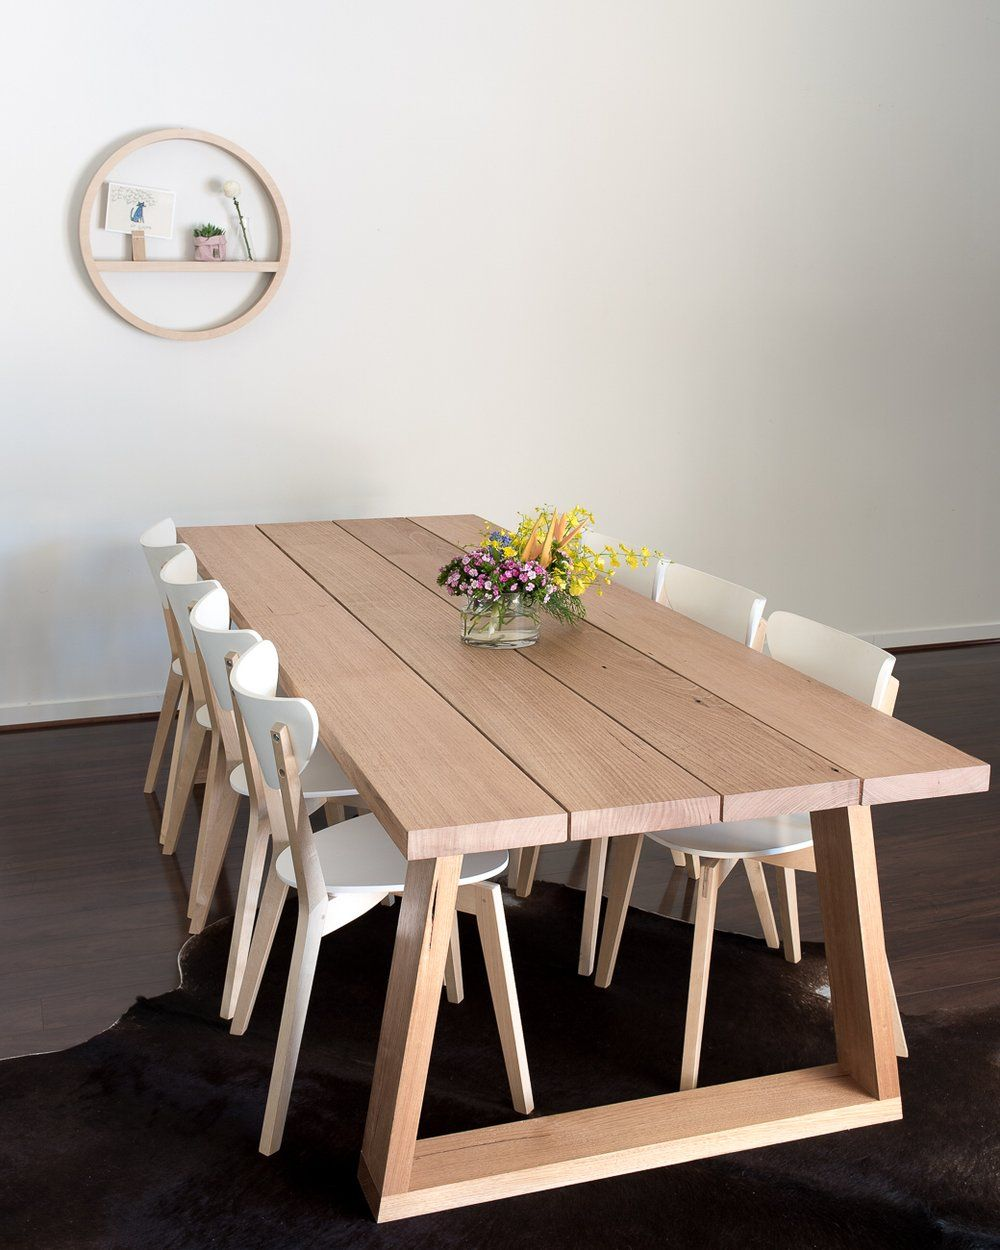 Plank Dining Table Timber Dining Table Dining Table Diy Dining Table